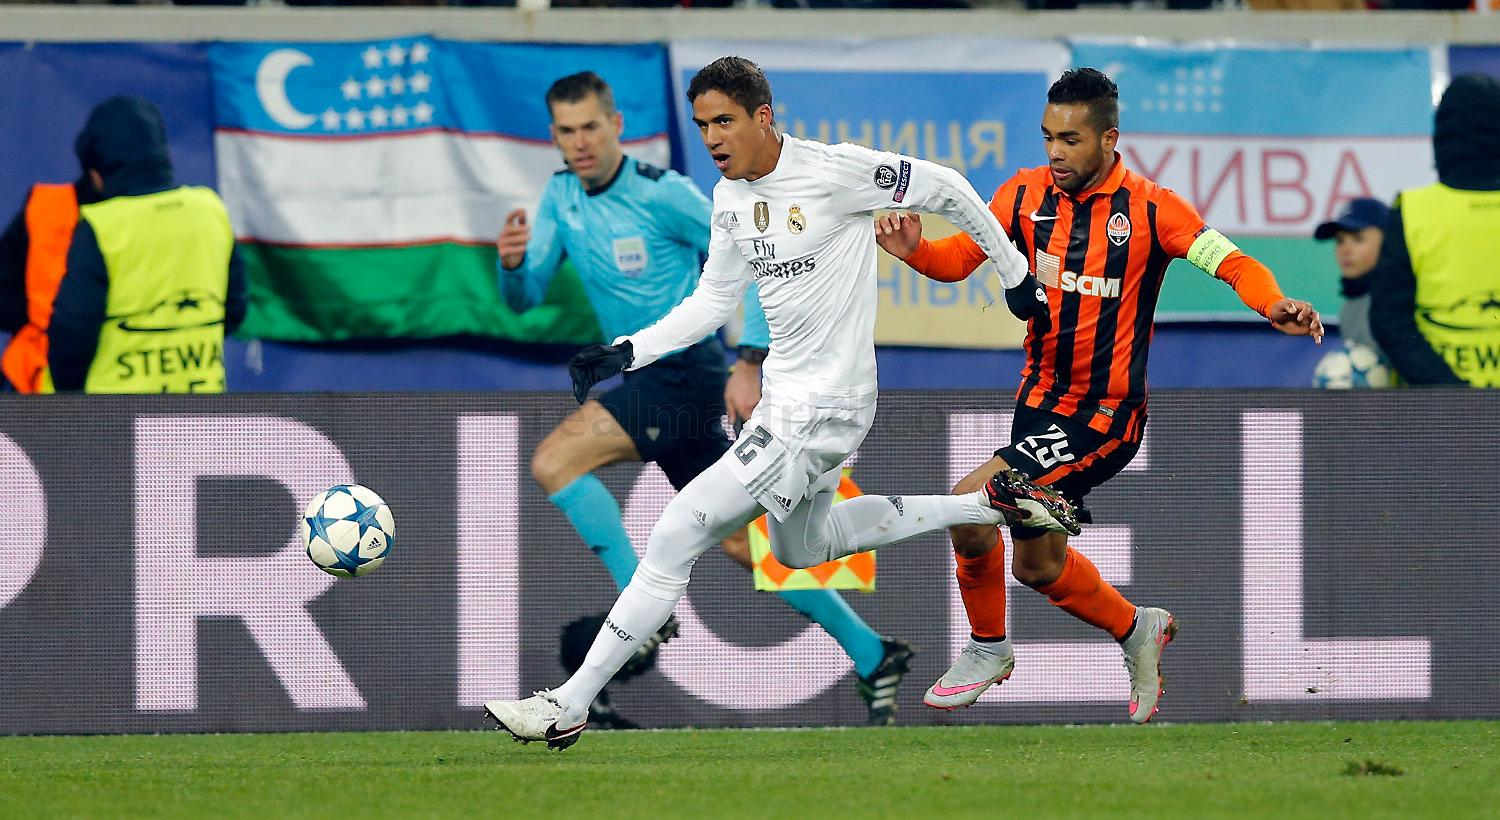 Real Madrid - Shakhtar Donetsk - Real Madrid - 25-11-2015